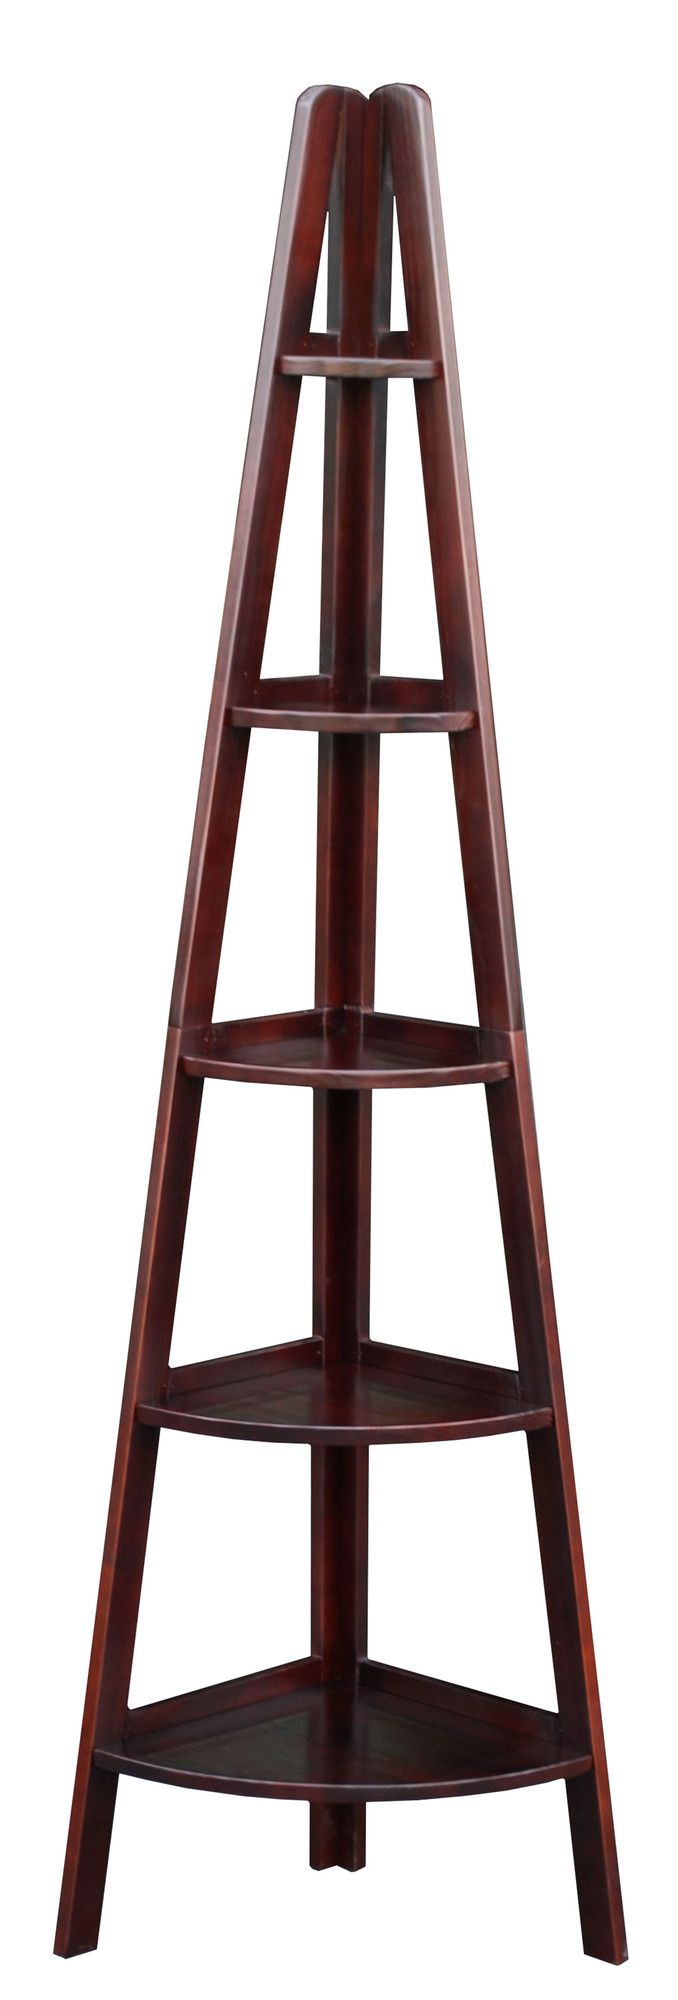 Ladder bookcase see picture - Casual Home 72 Corner Ladder Bookcase Reviews Wayfair